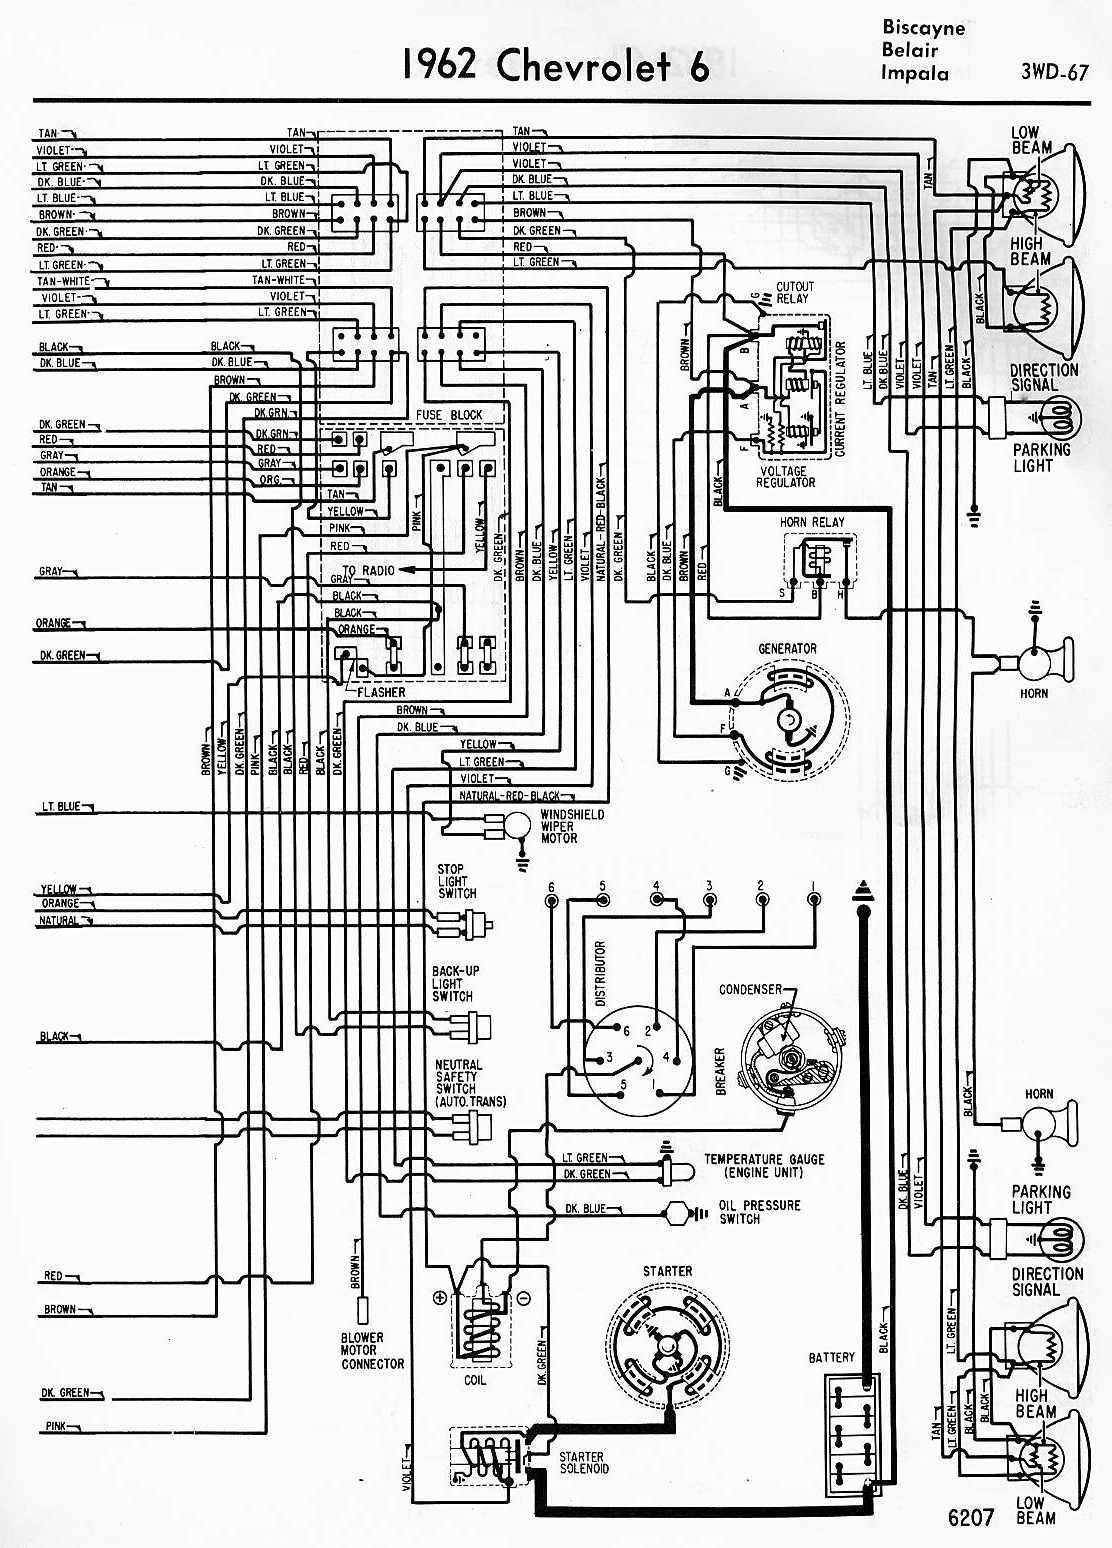 small resolution of under dash wiring harness 1970 impala wiring diagram mega1970 impala wiring harness wiring diagram week 1970